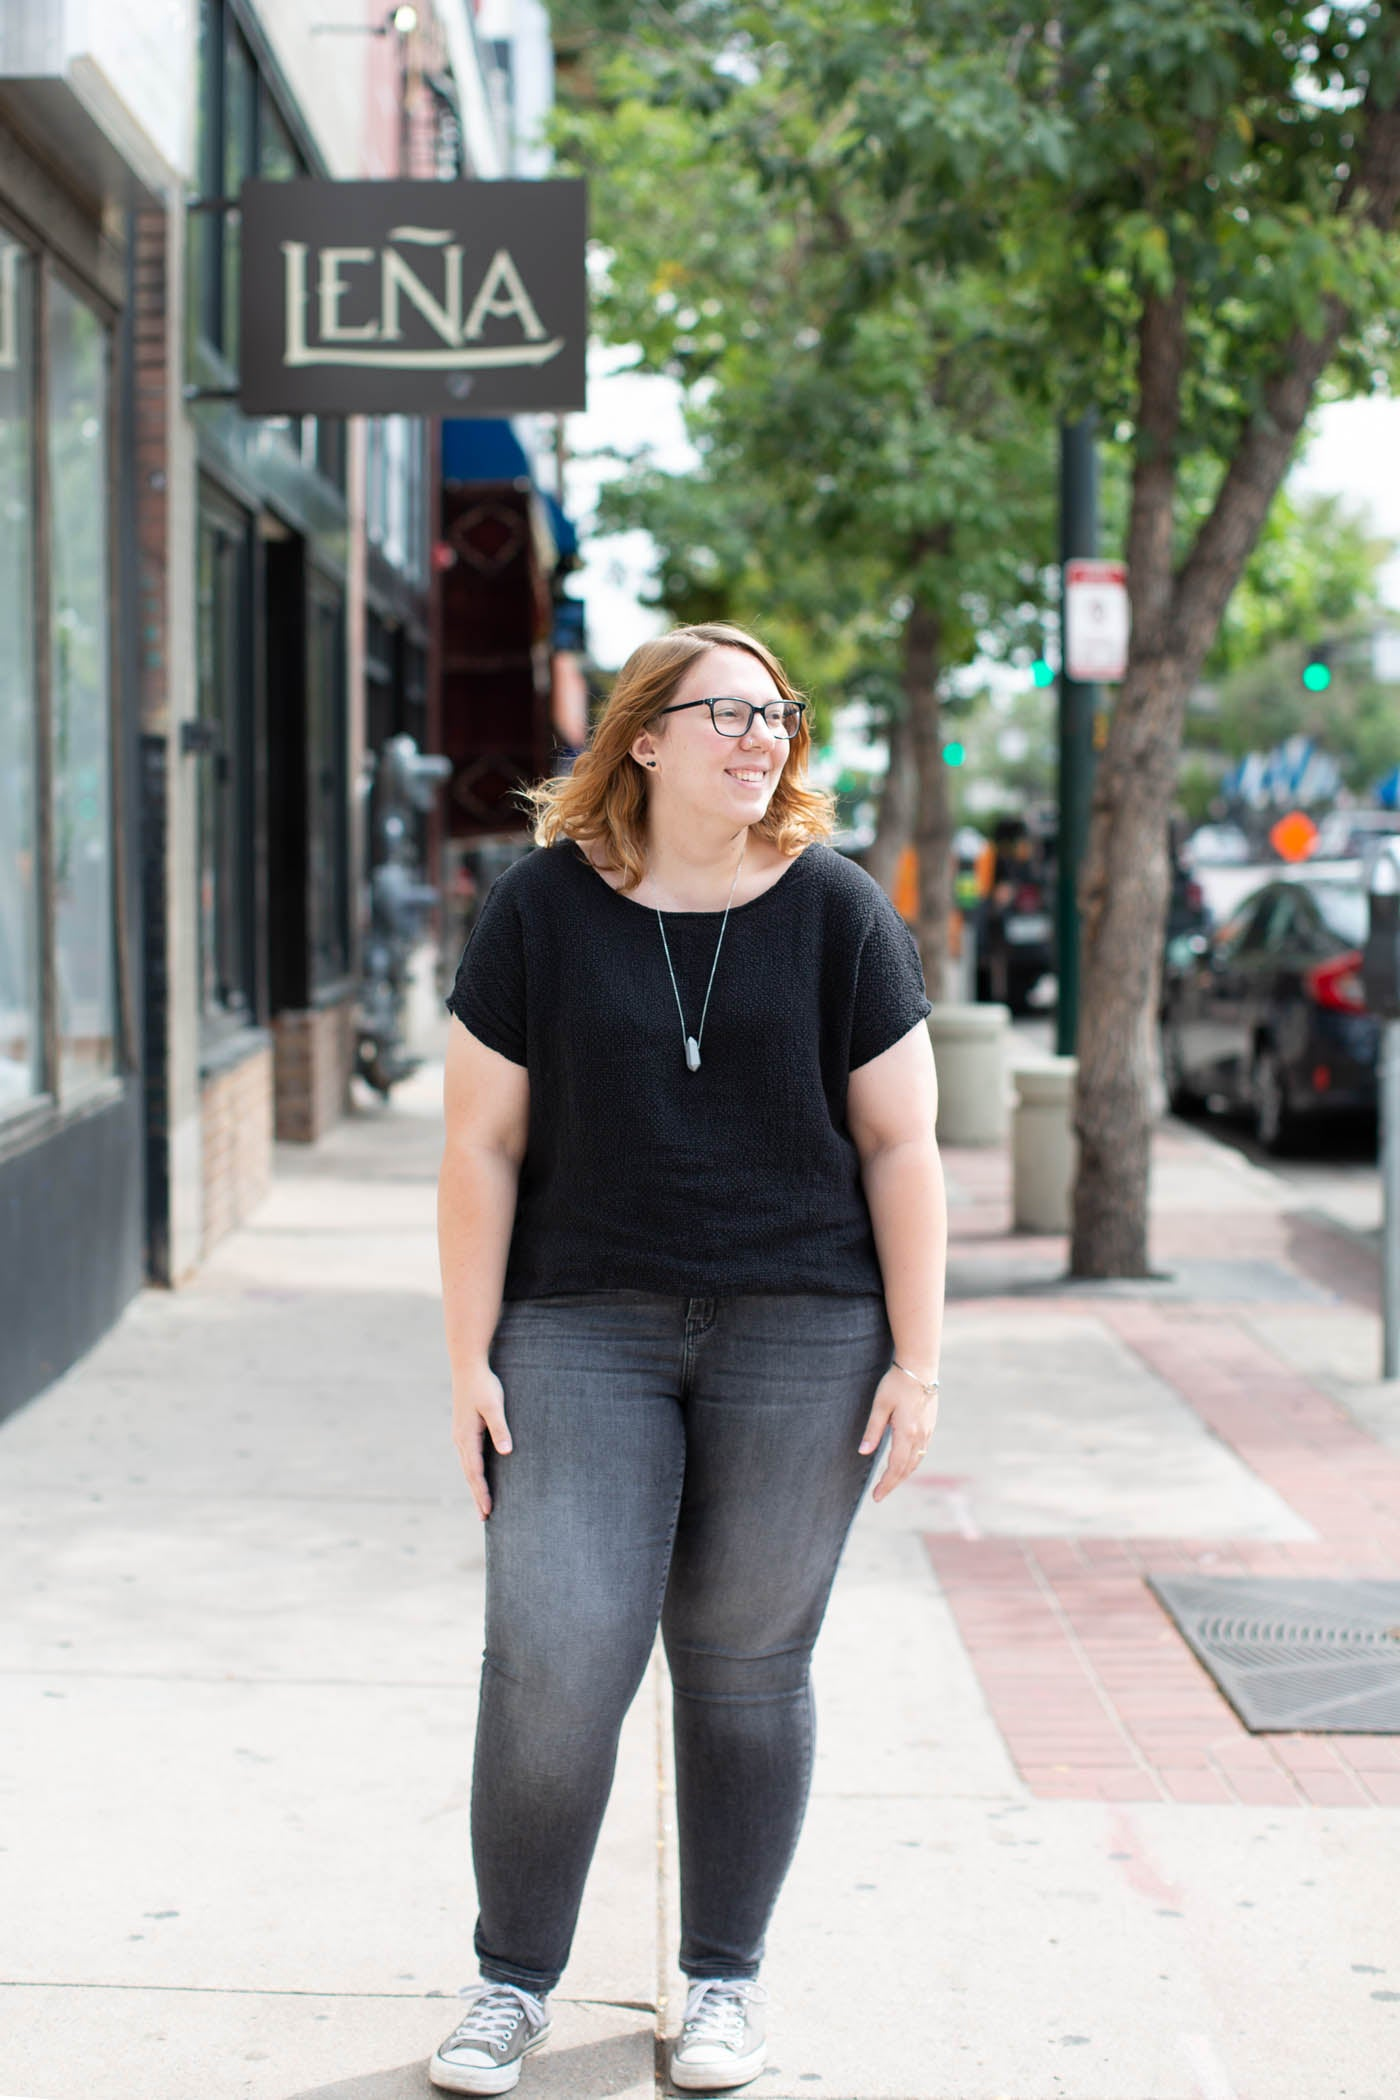 Women standing on a city sidewalk wearing a black top and grey jeans. Women has her hands down to her sides and looking towards the city street and smiling.